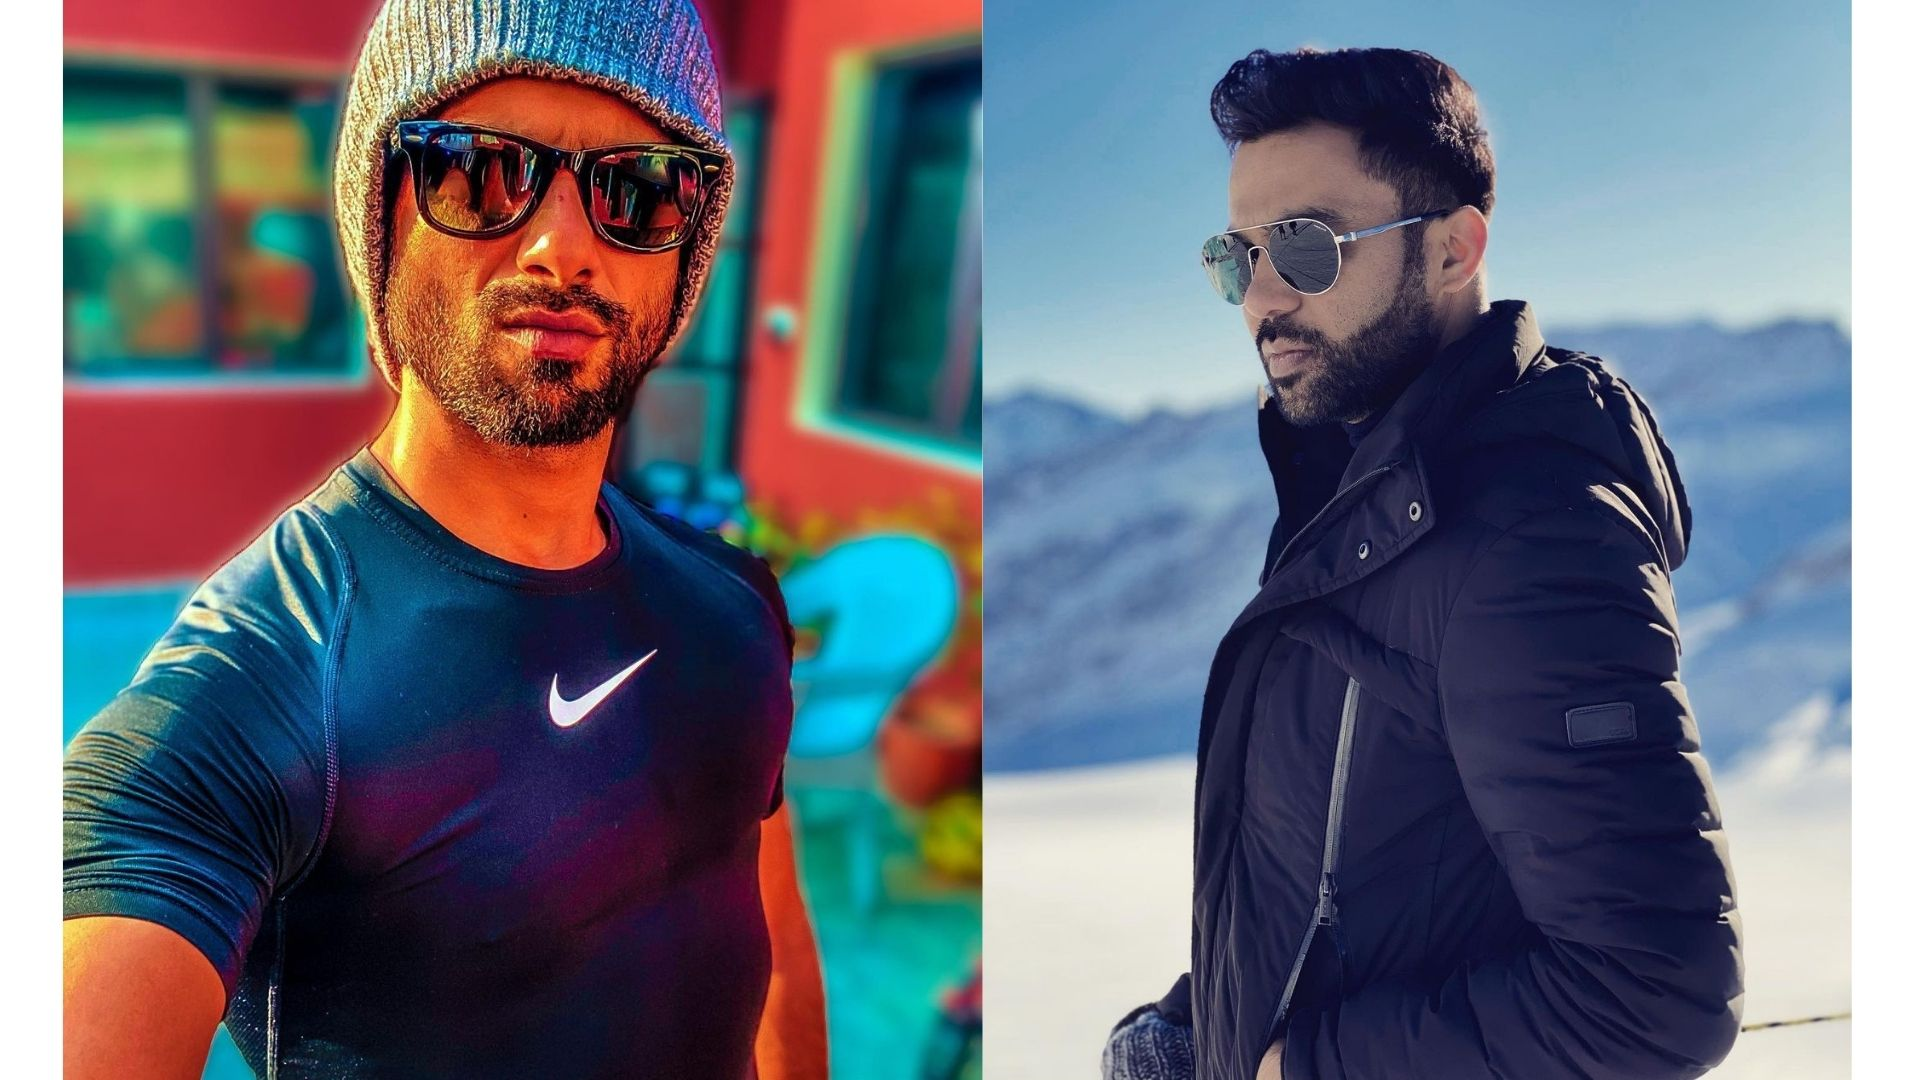 Shahid Kapoor And Ali Abbas Zafar Shake Hands For The Remake of Nuit Blanche – Reports